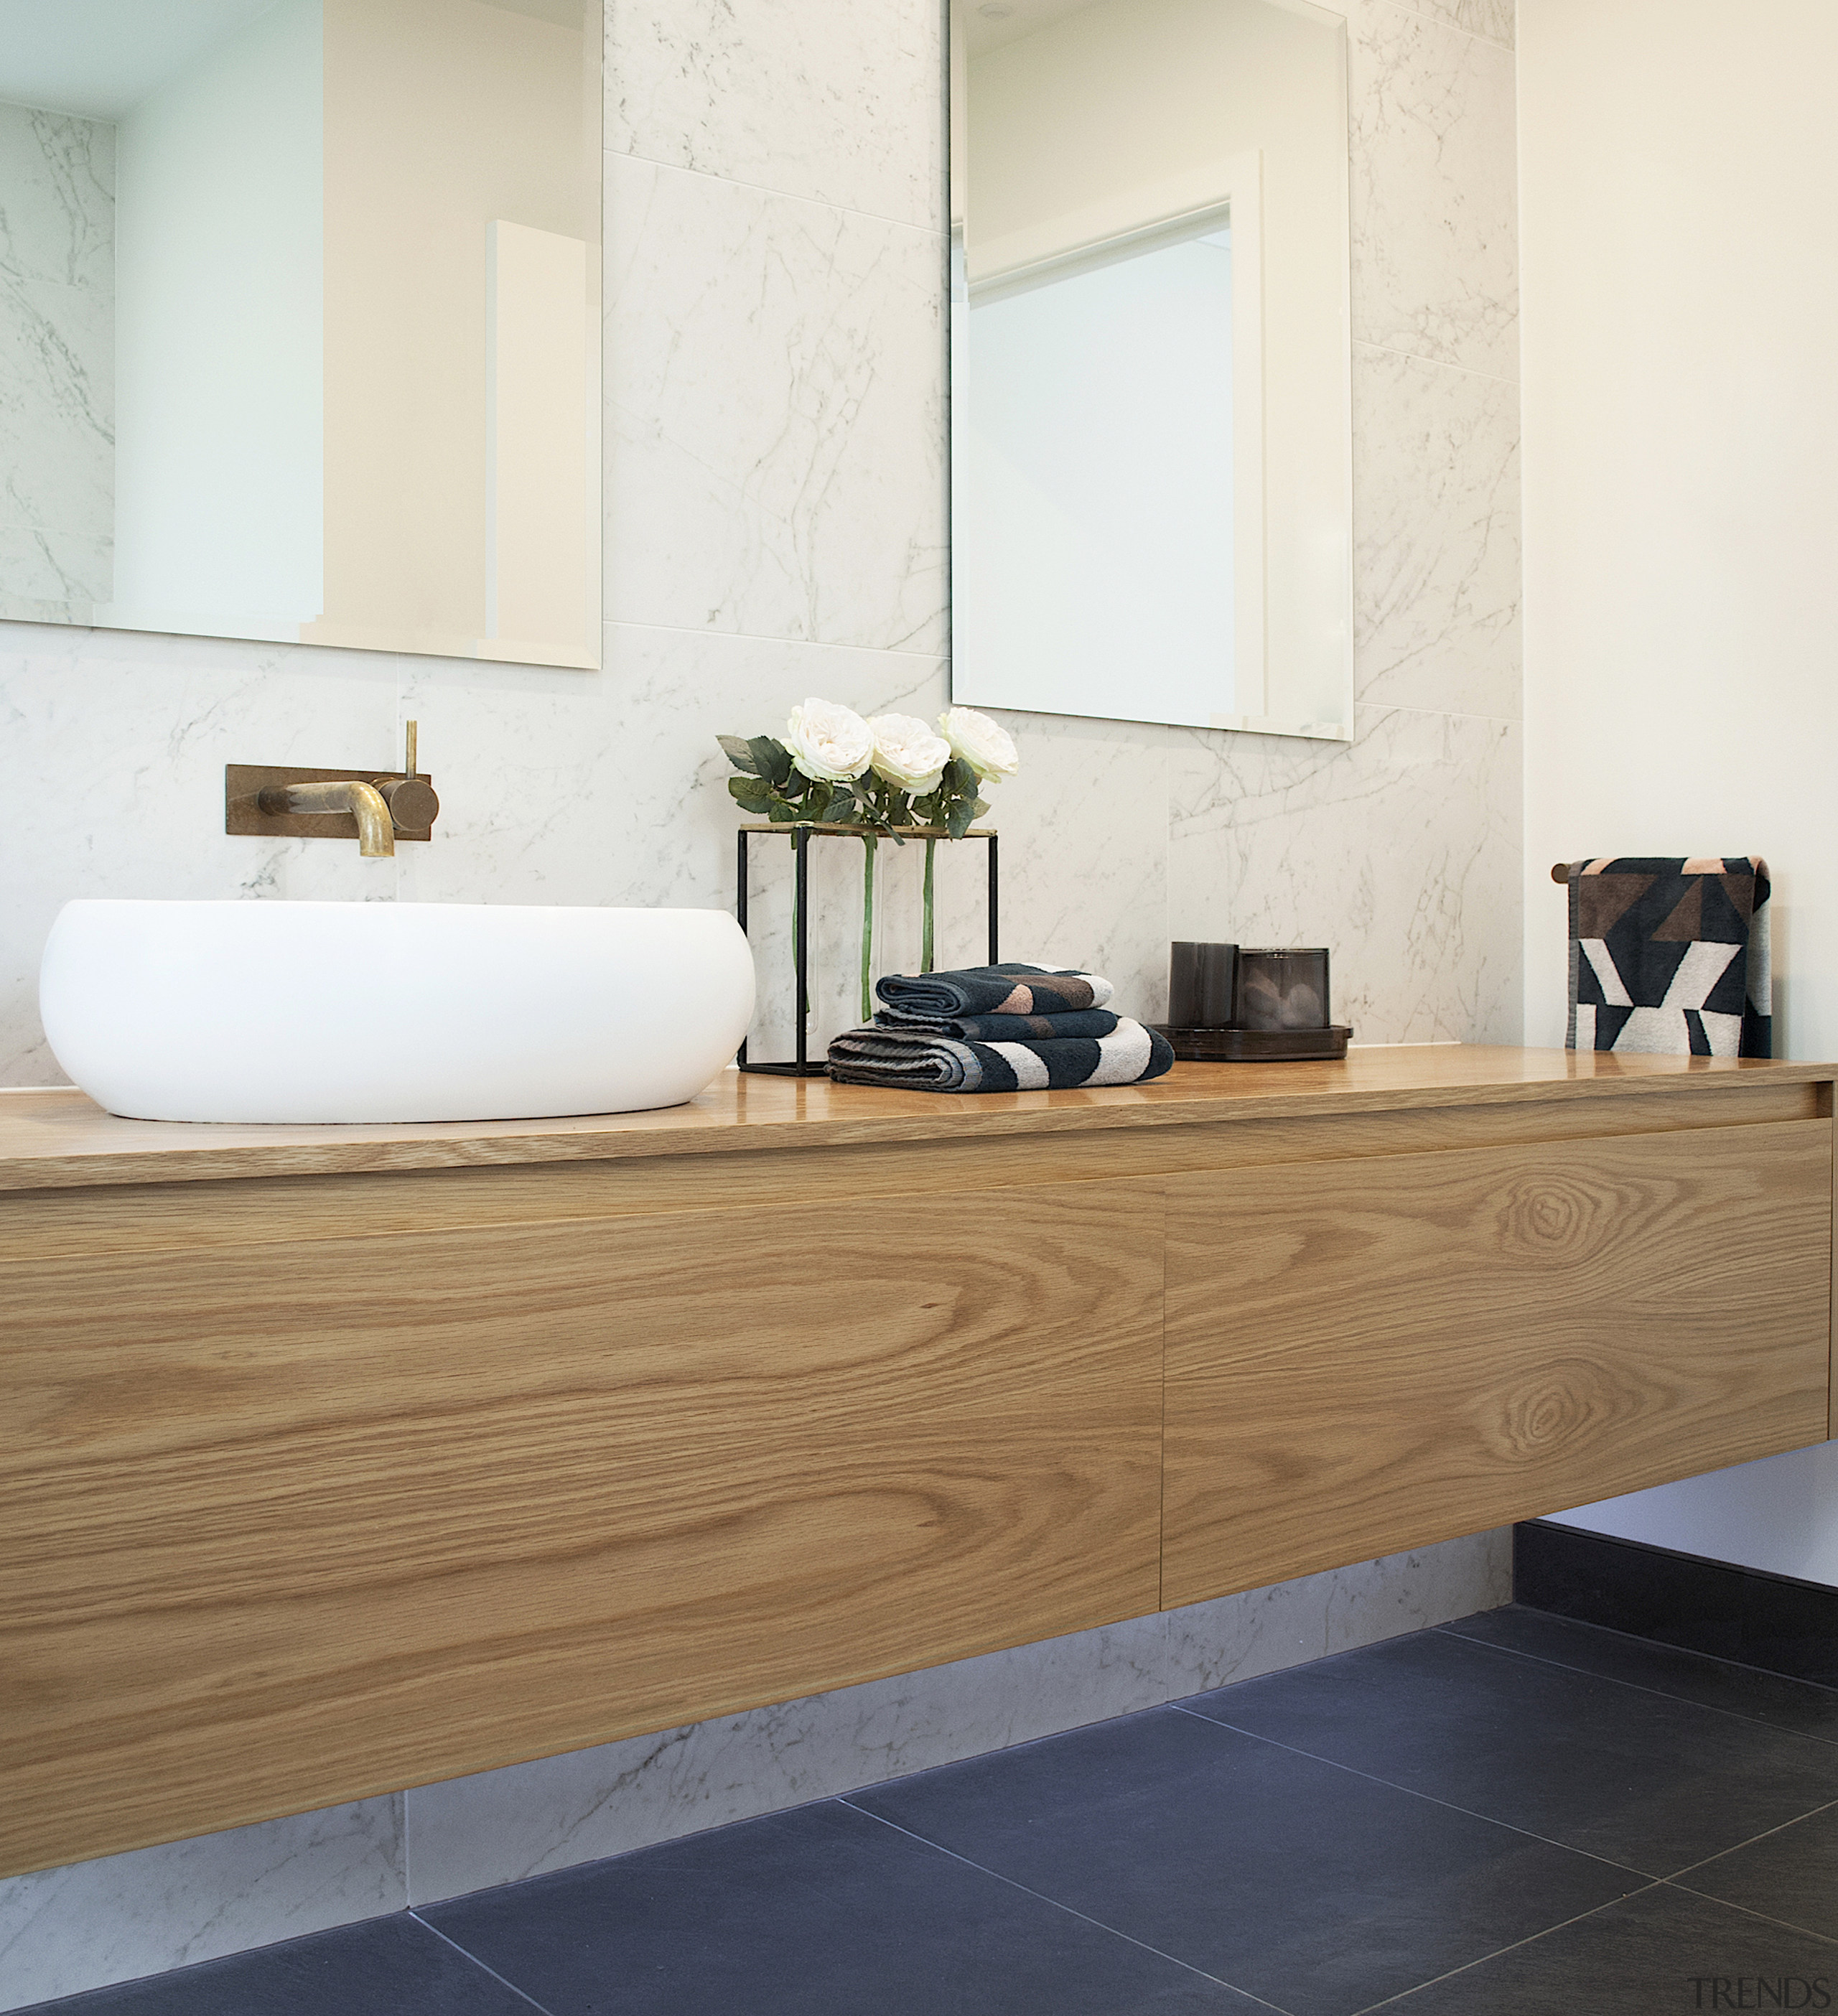 The large vanity creates sufficient storage for the white